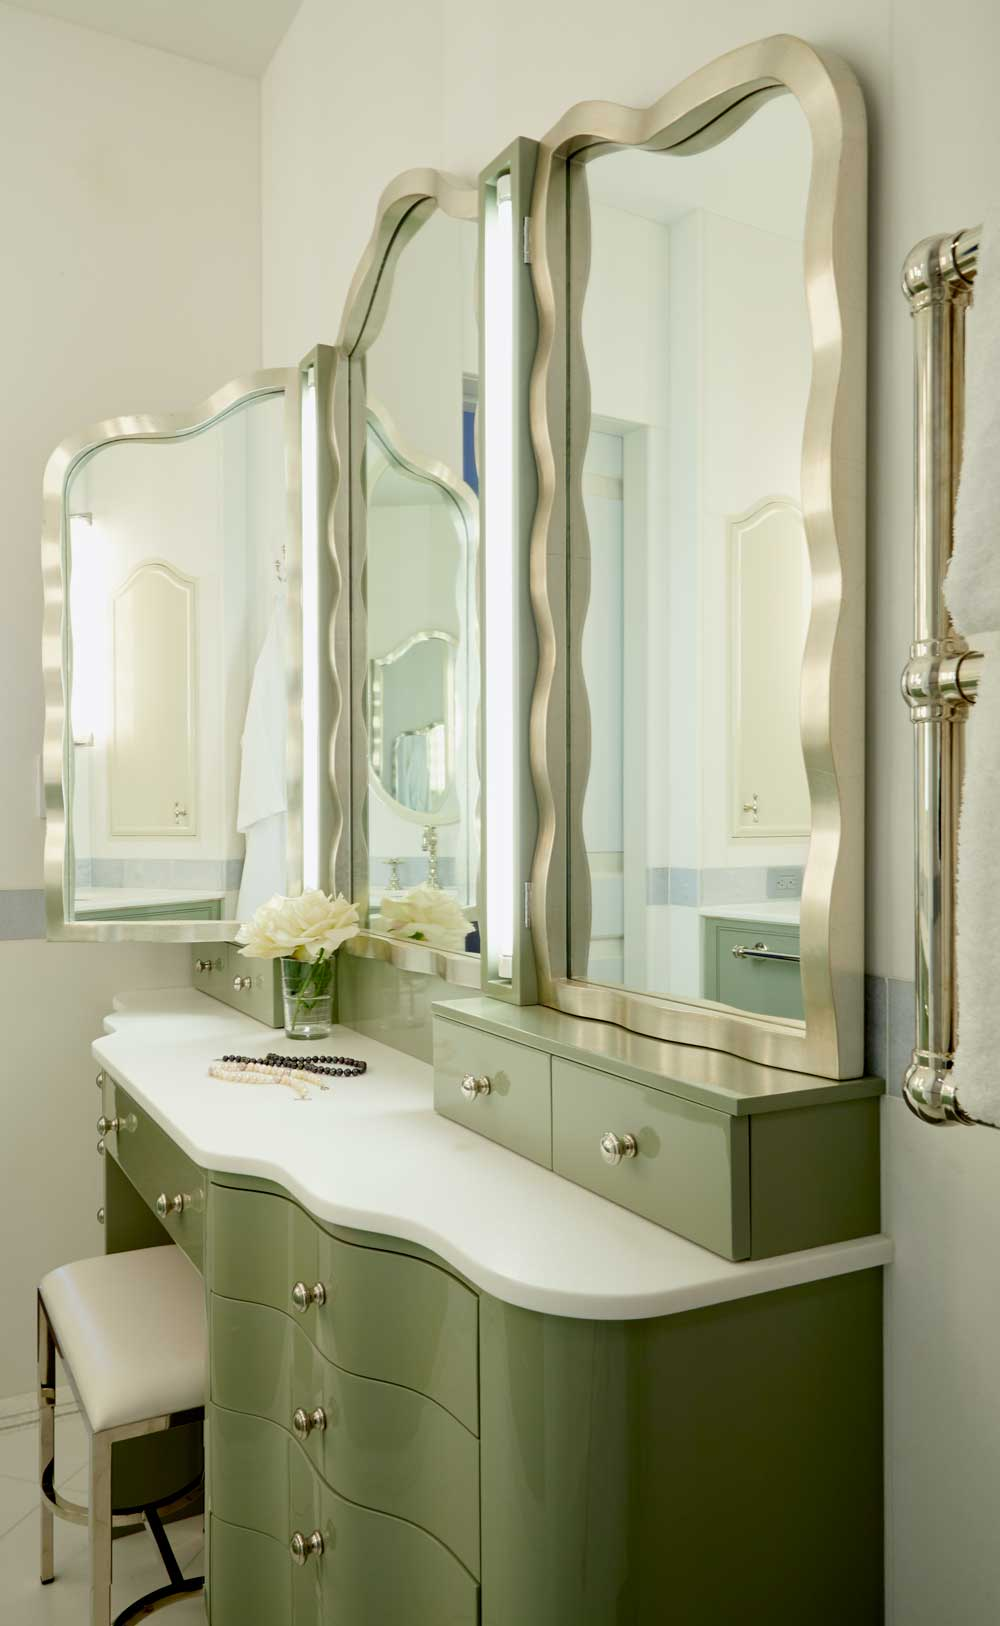 brooke moorhead design 5th avenue classic vanity